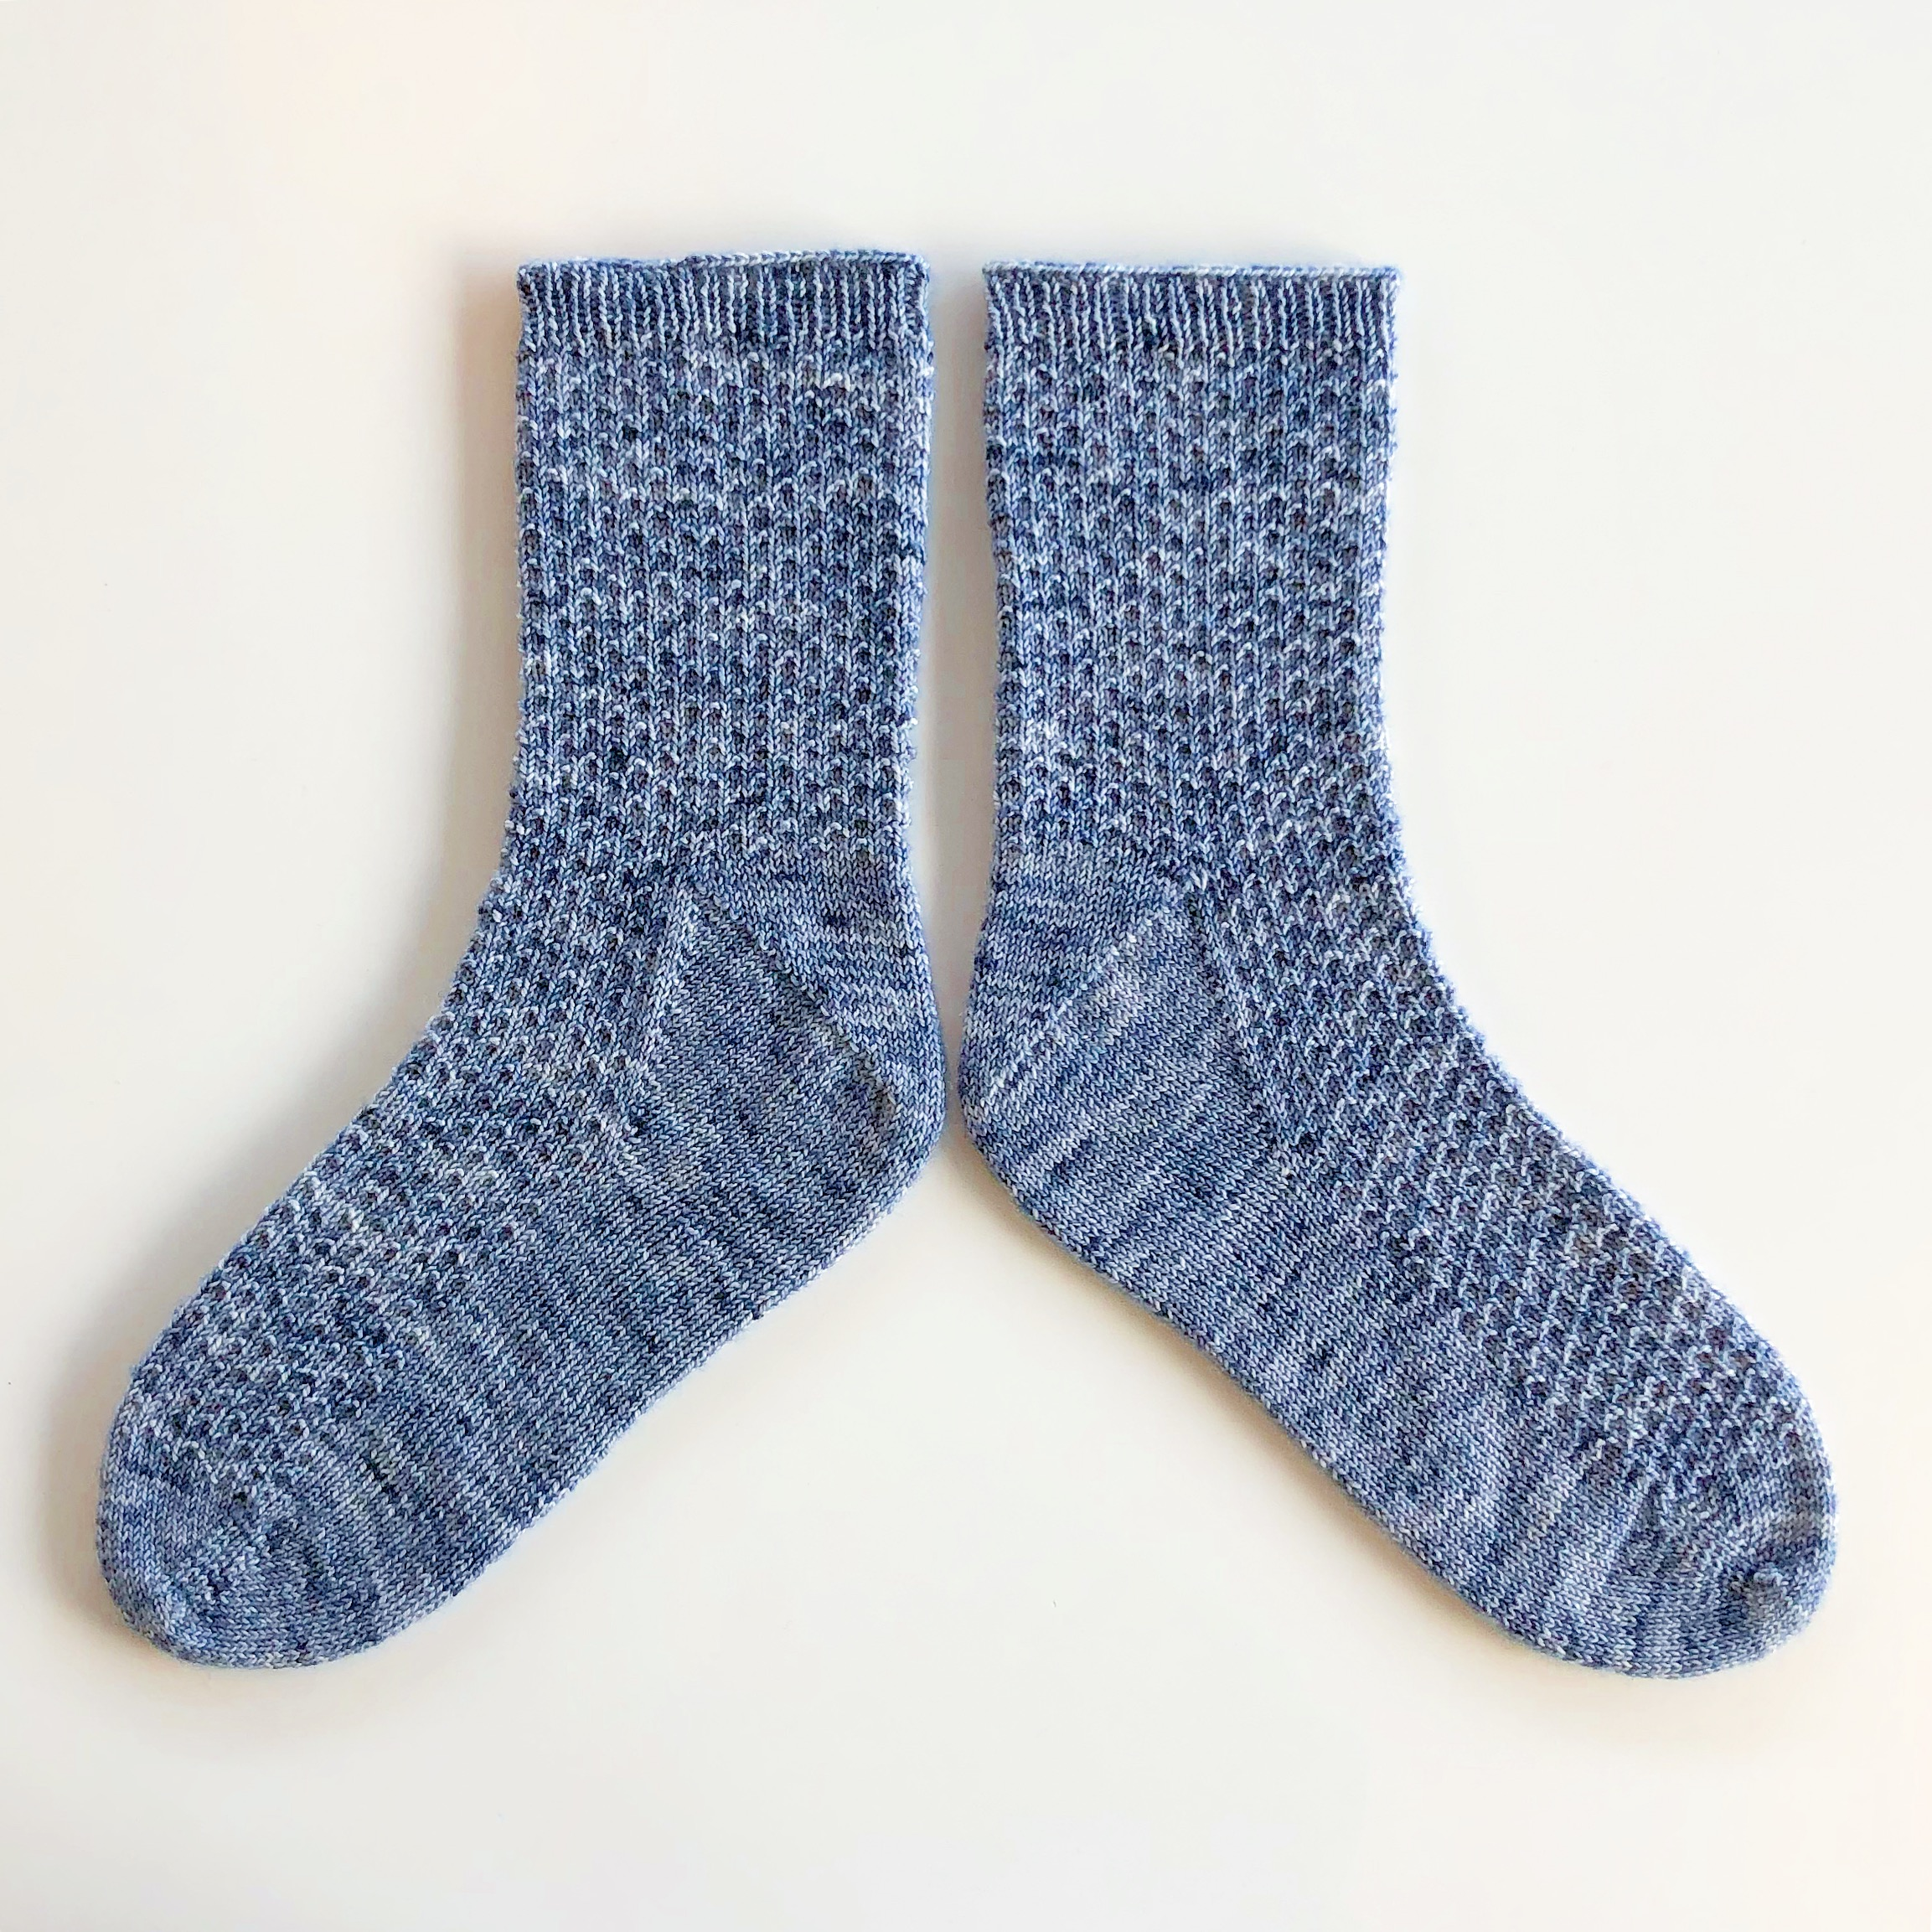 """We borrowed the texture from  """"Hermione's Everyday Socks"""" by Erica Lueder  for this pair using our recipe."""